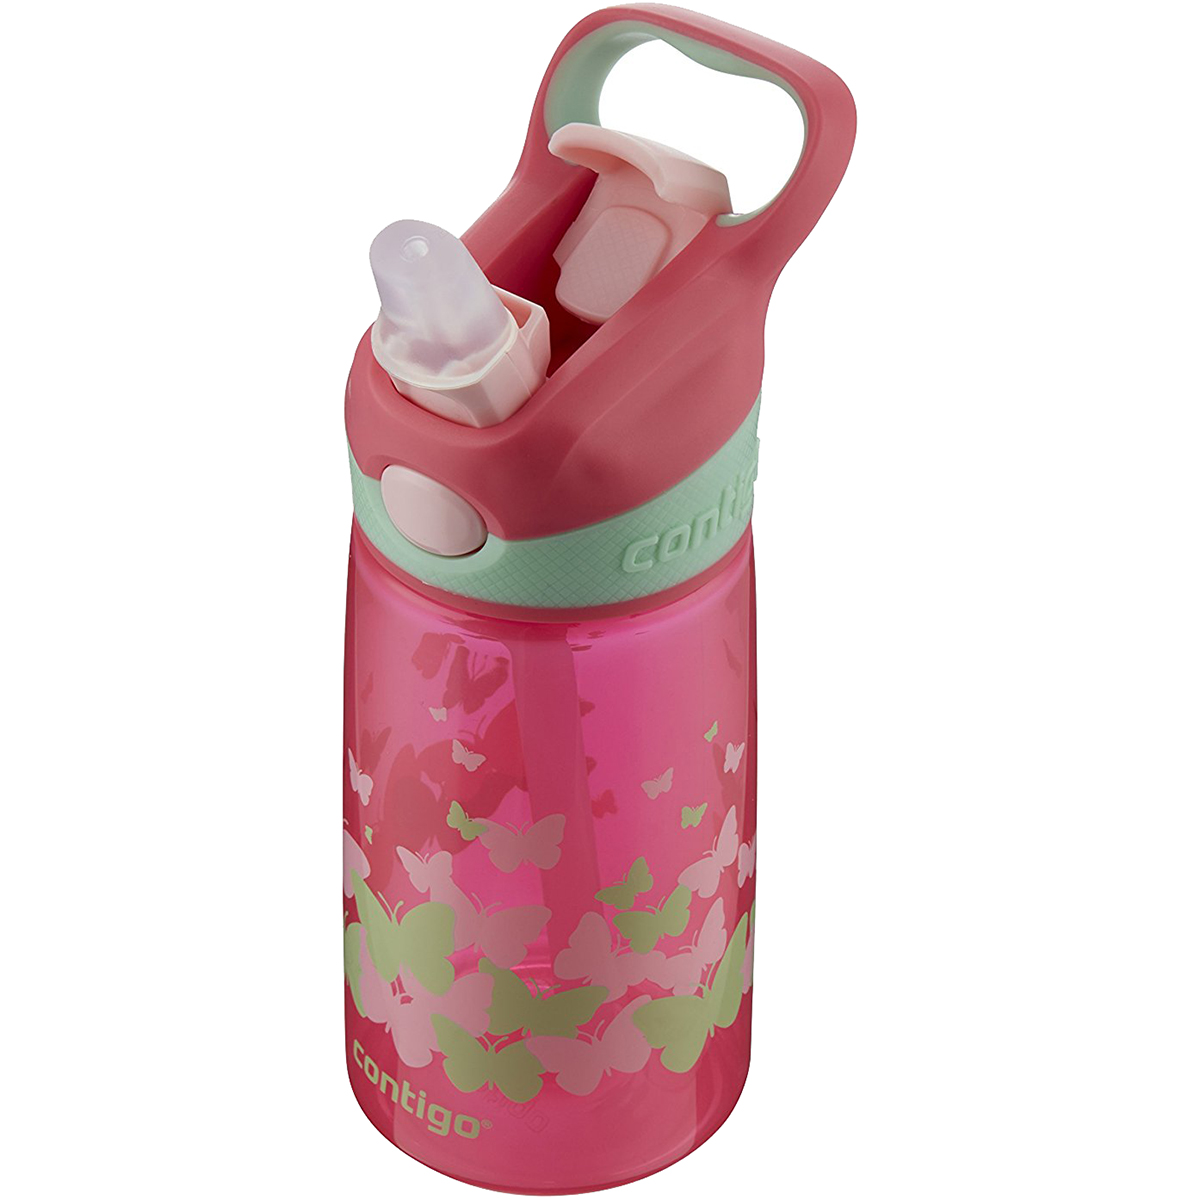 Contigo-14-oz-Kid-039-s-Striker-Autospout-Water-Bottle Indexbild 50